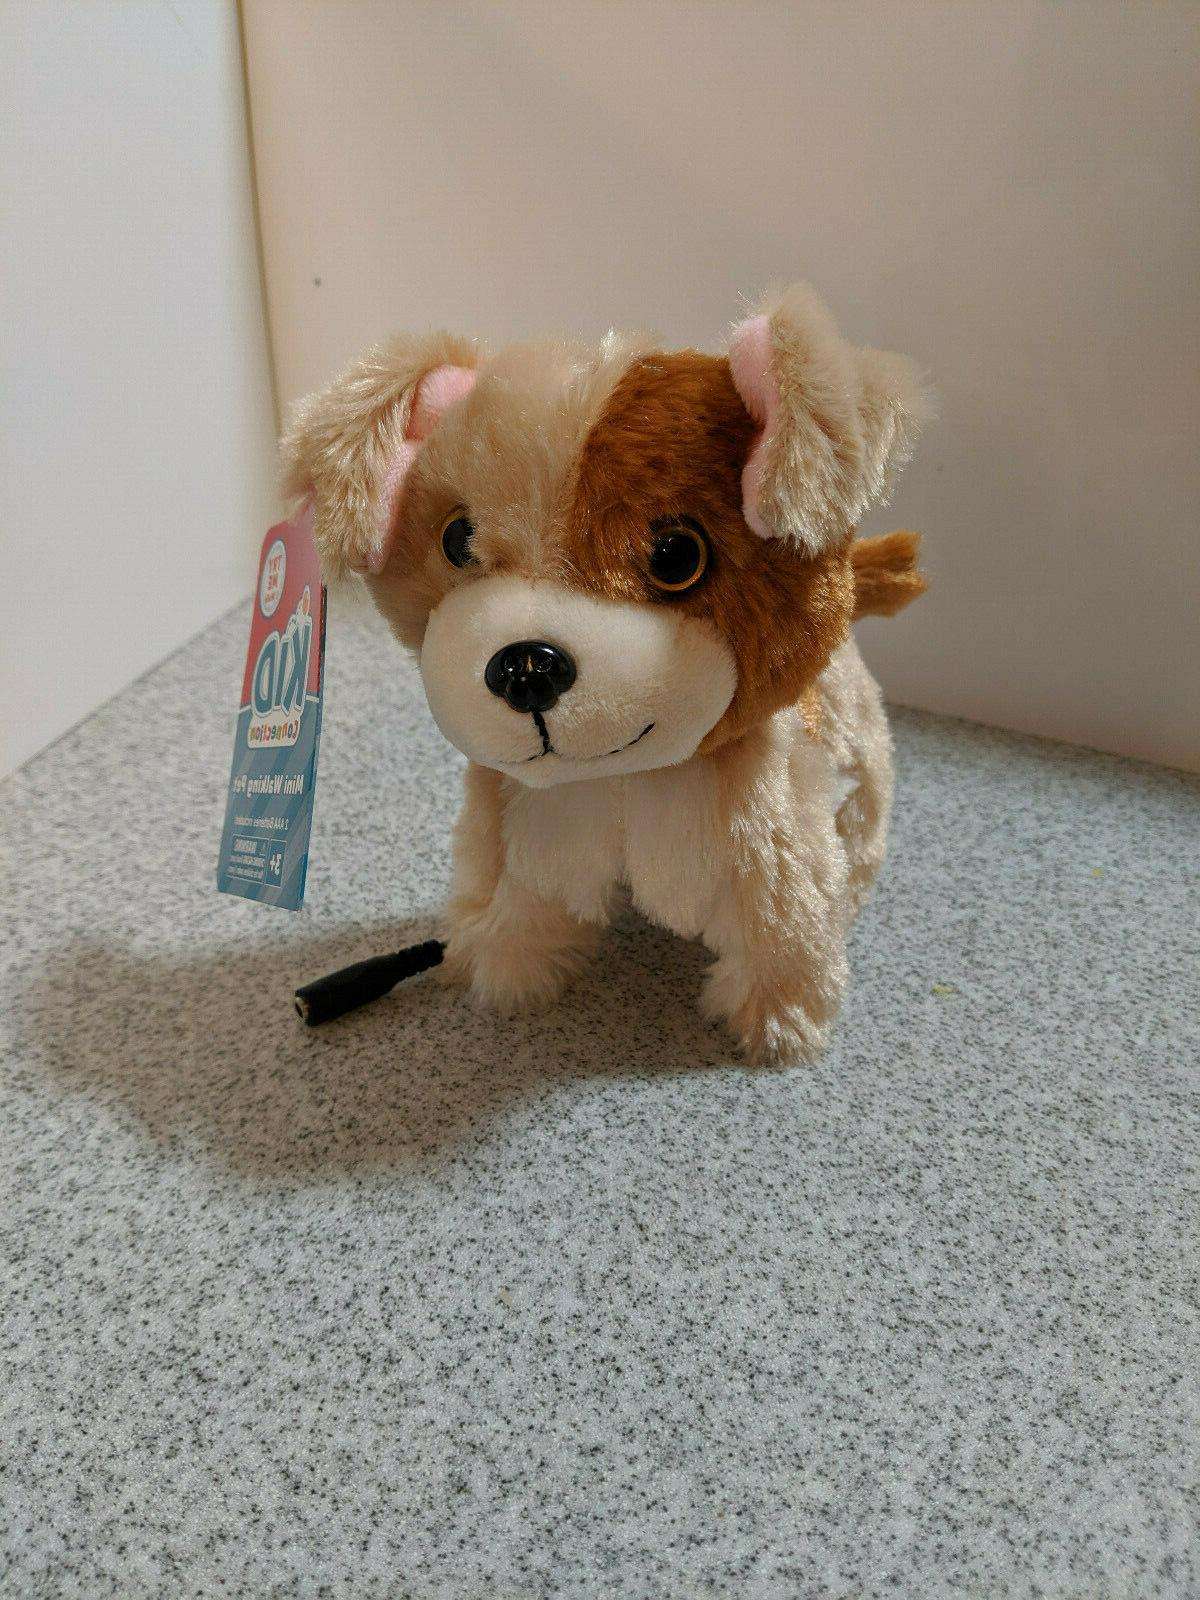 Switch Adapted puppy or Adaptive toy, Special